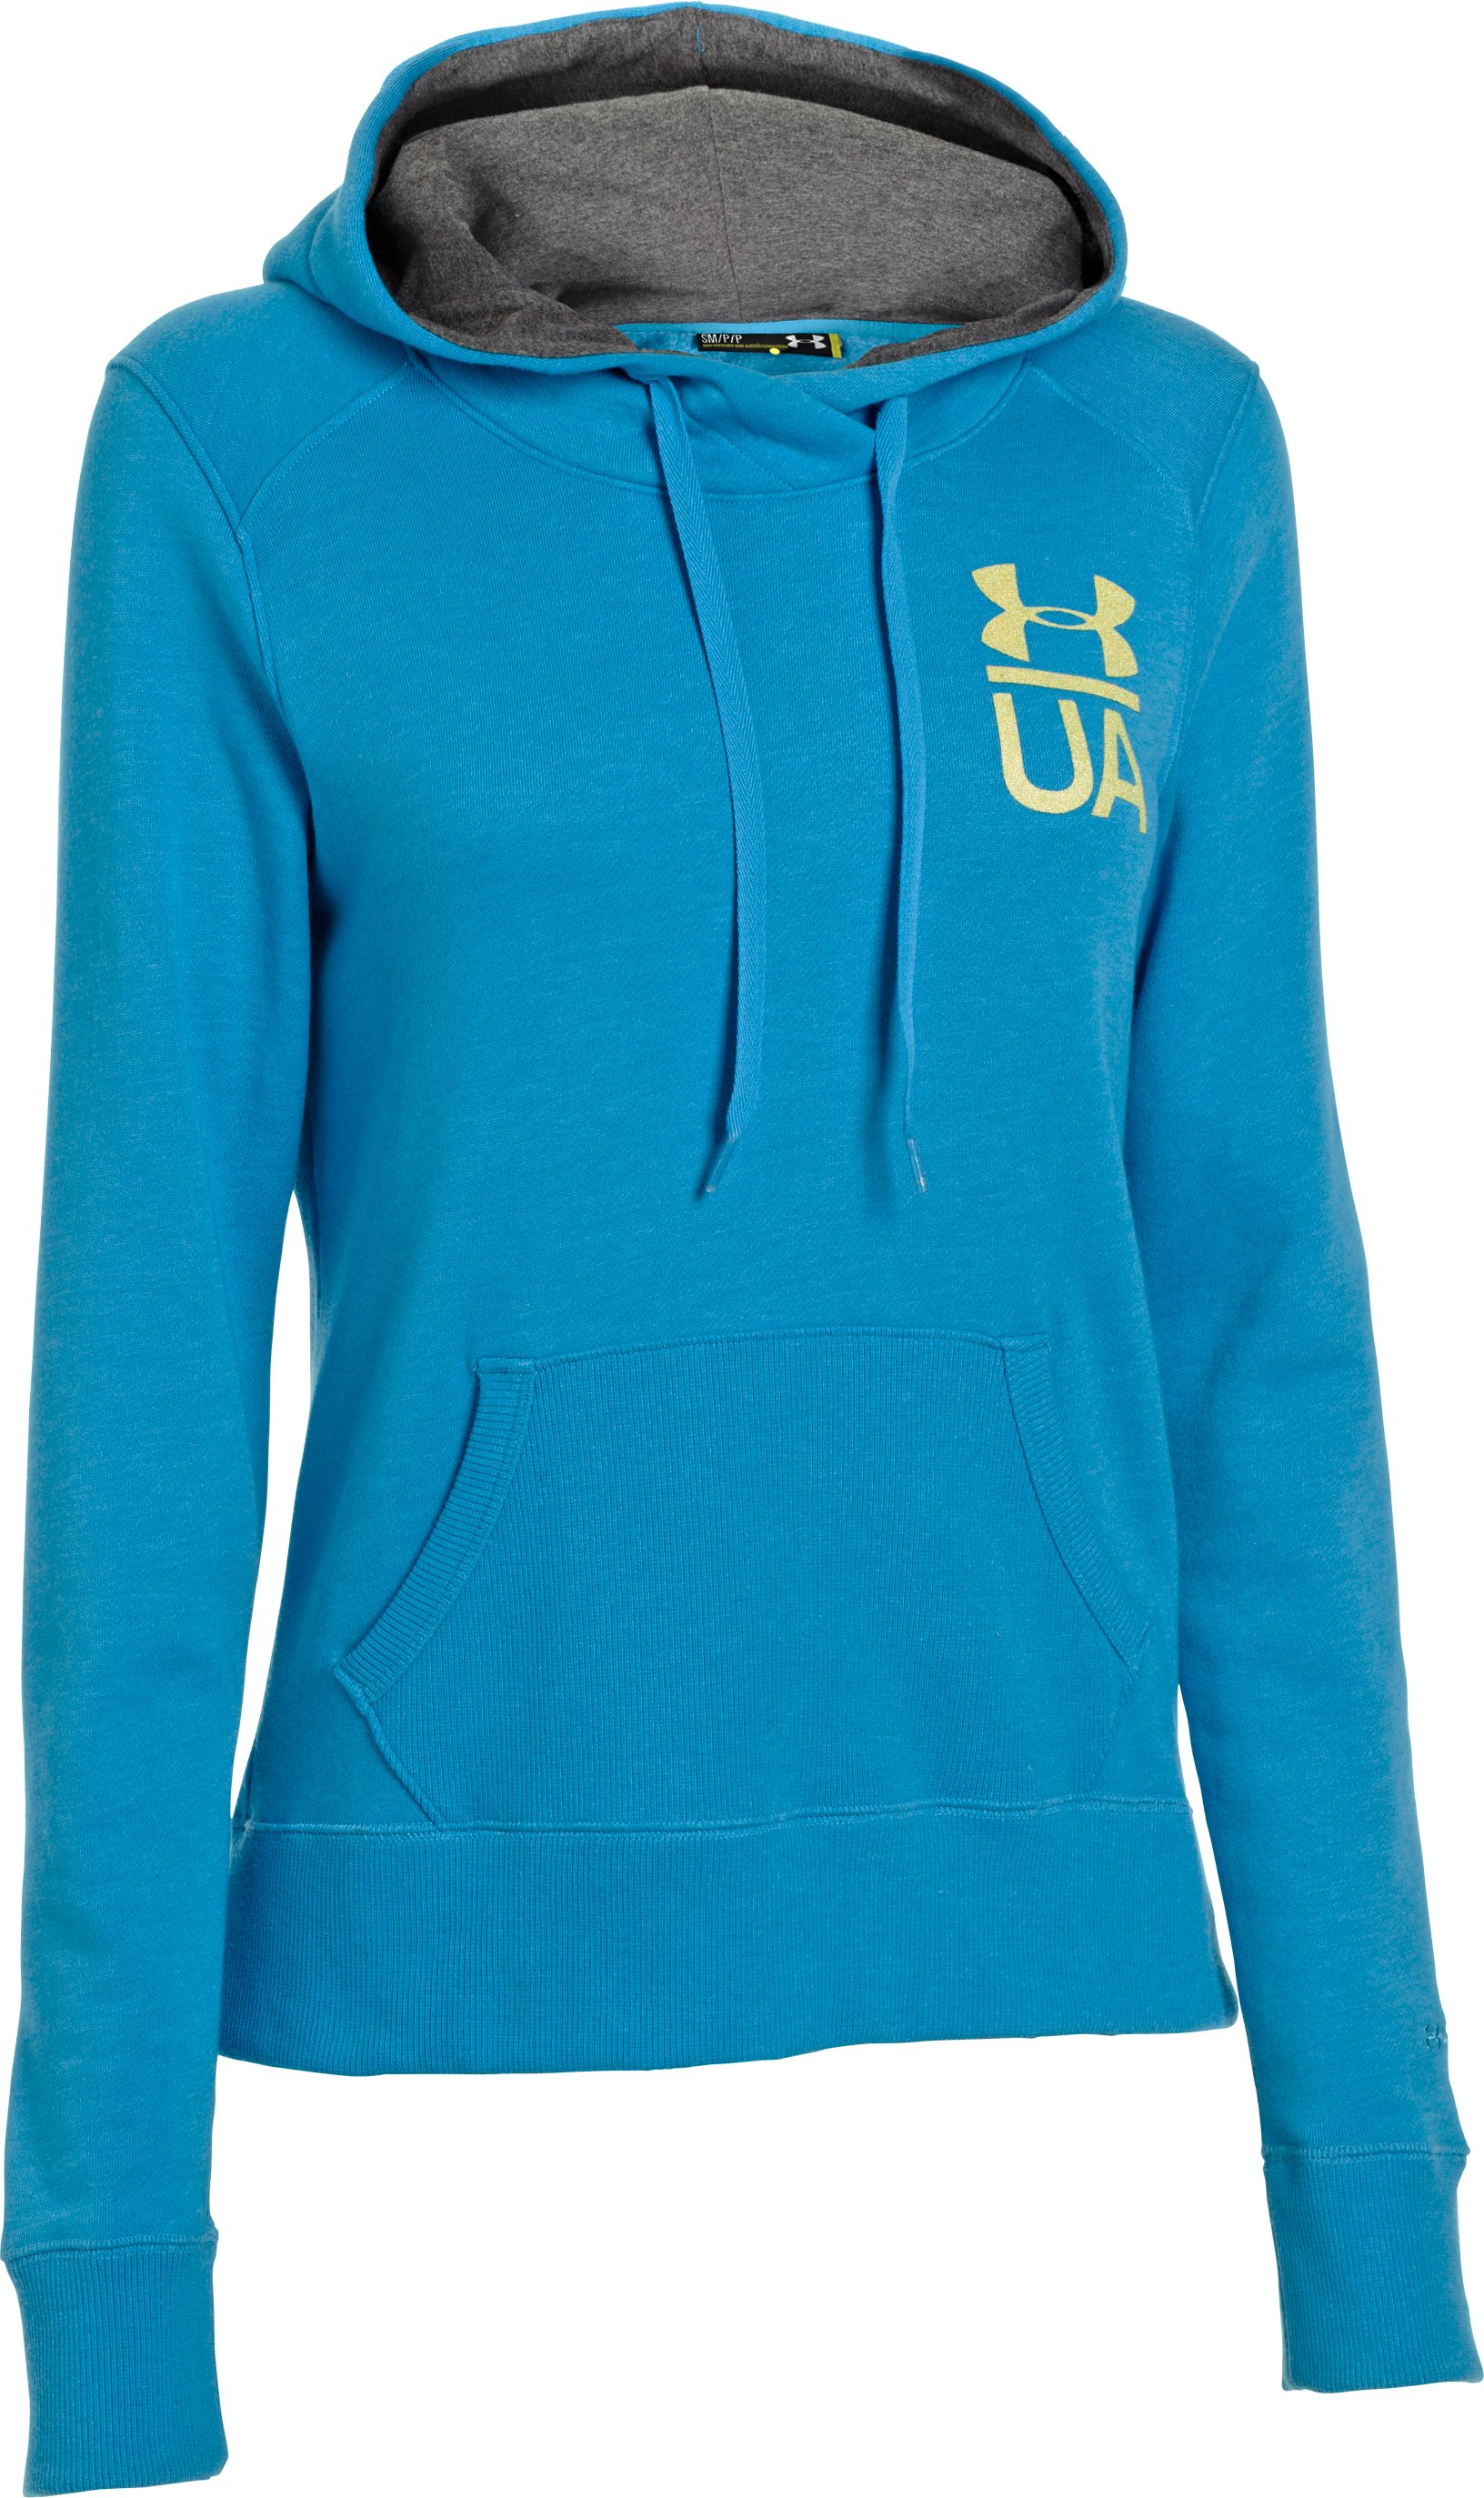 Women's Charged Cotton® Legacy Hoodie, PIRATE BLUE